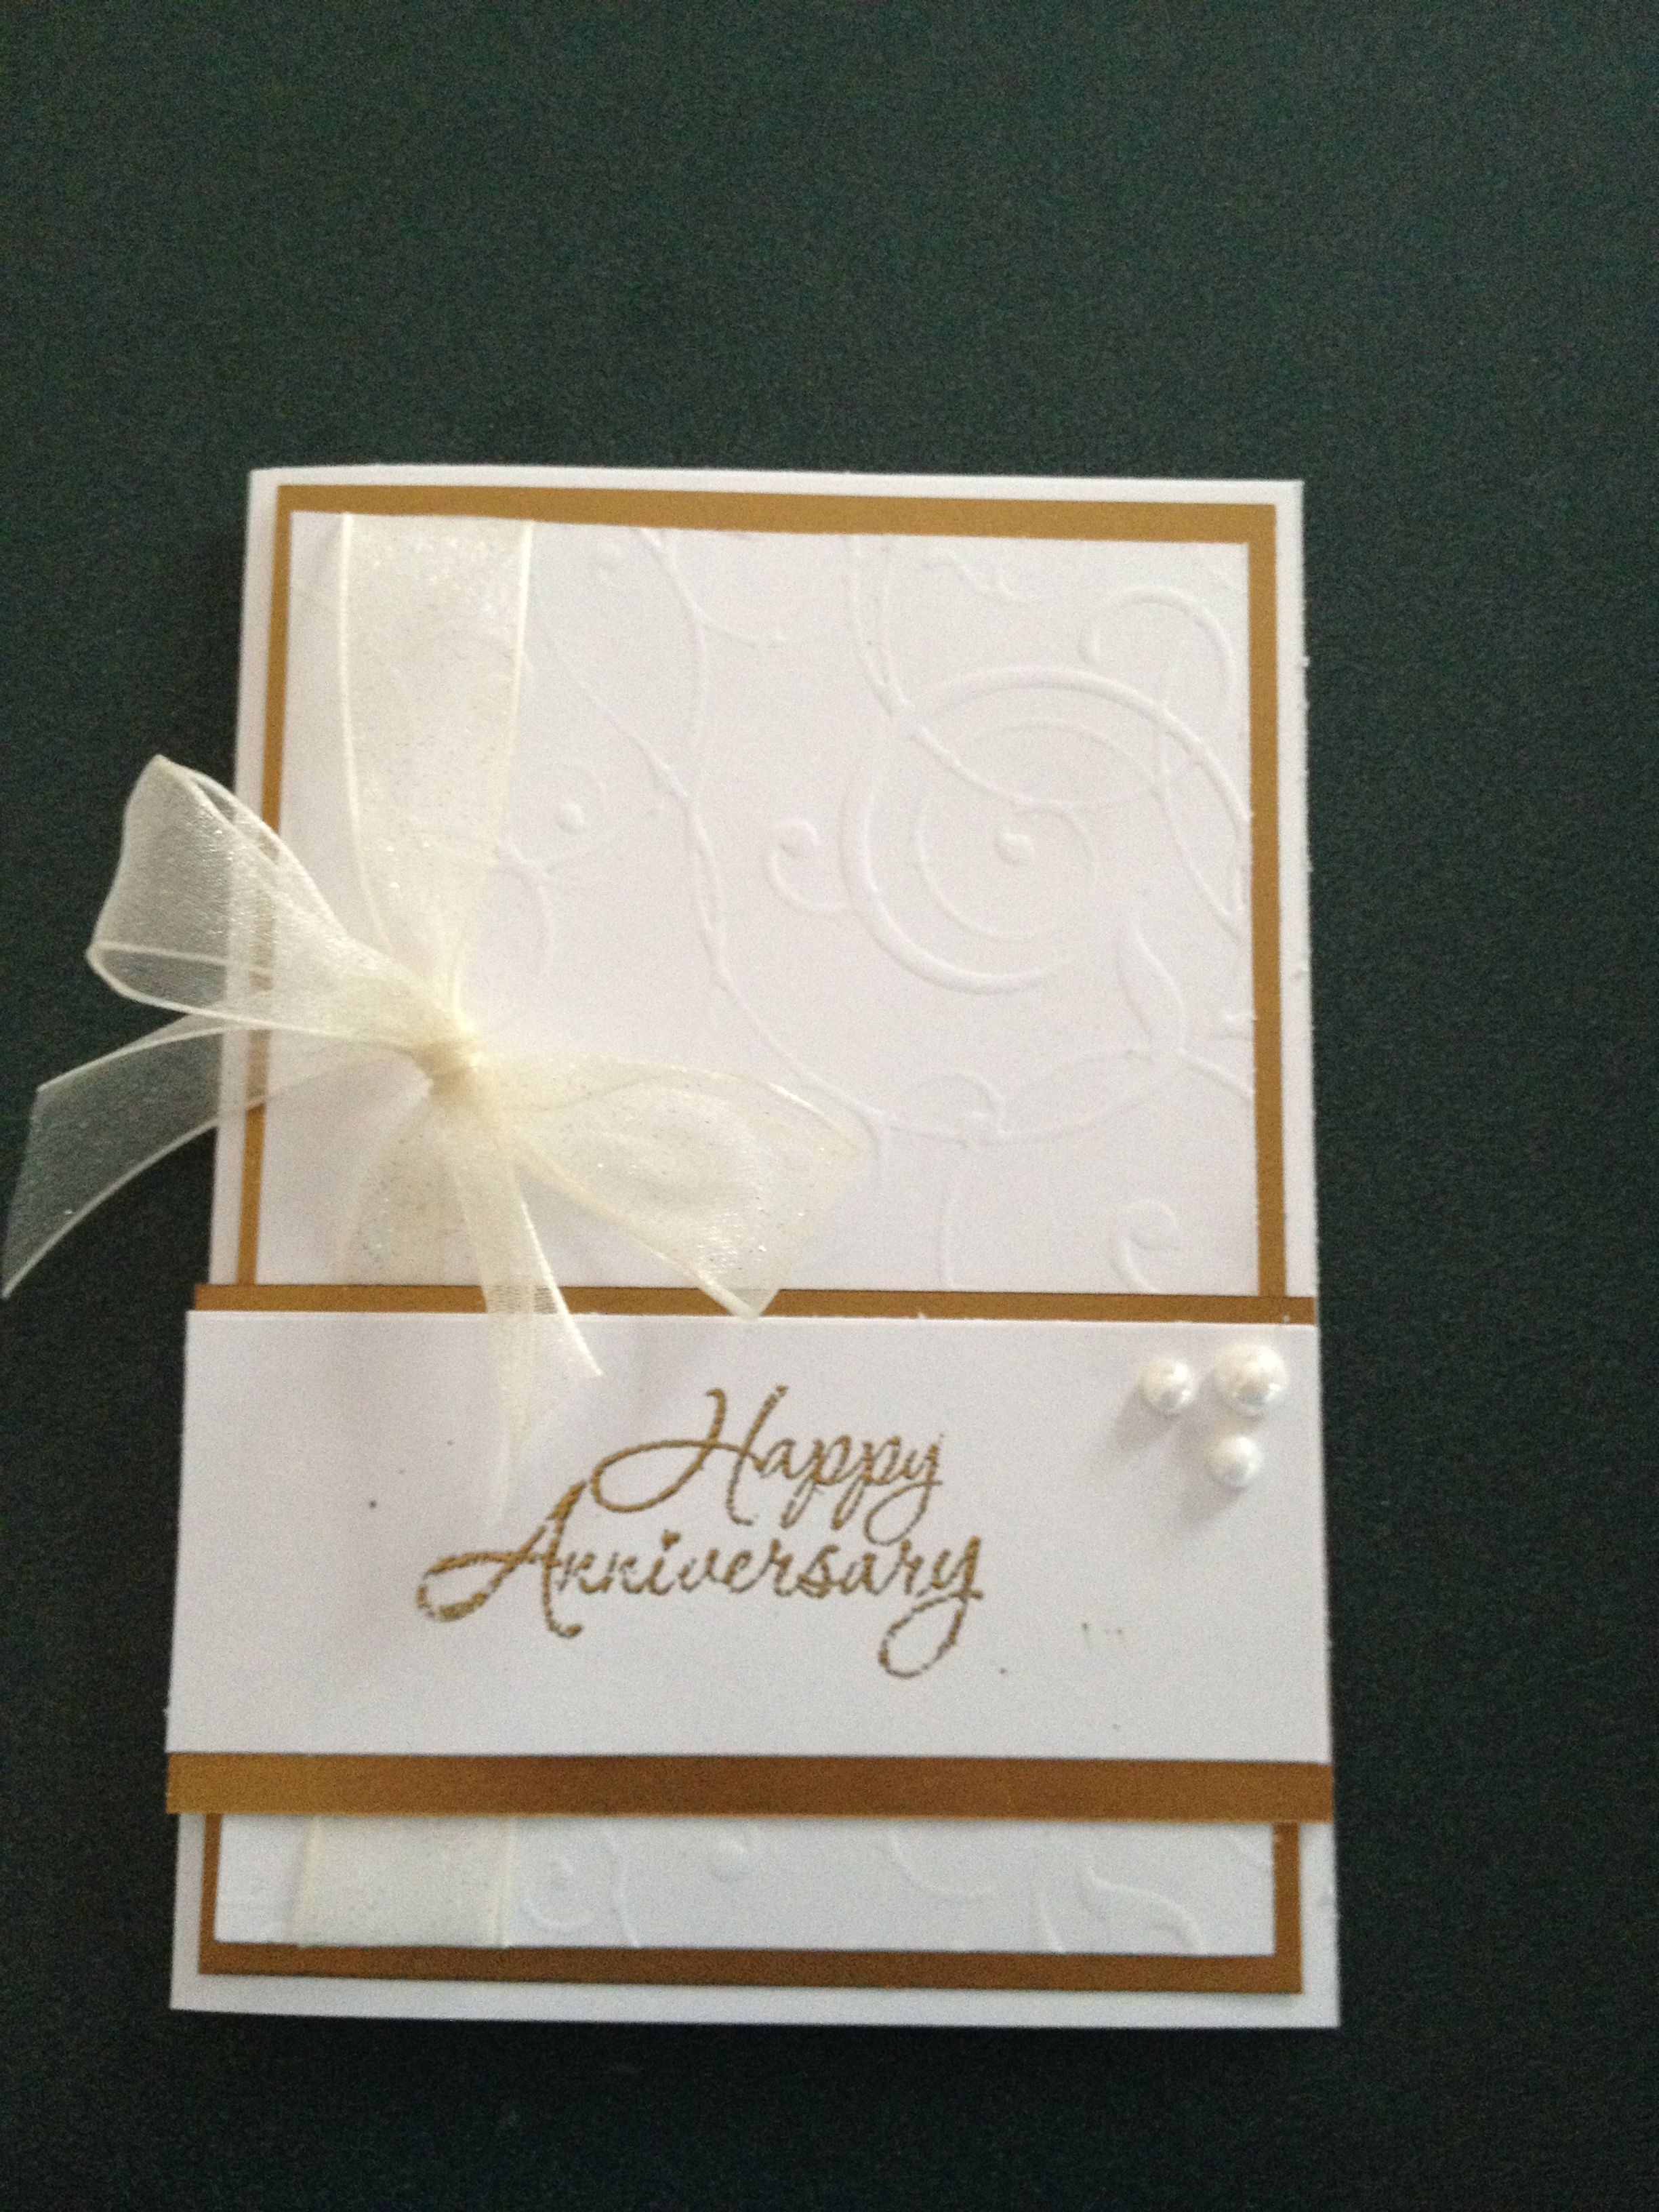 Pin By Patricia Dunn On Stamping 50th Anniversary Cards Anniversary Cards Handmade Wedding Anniversary Cards